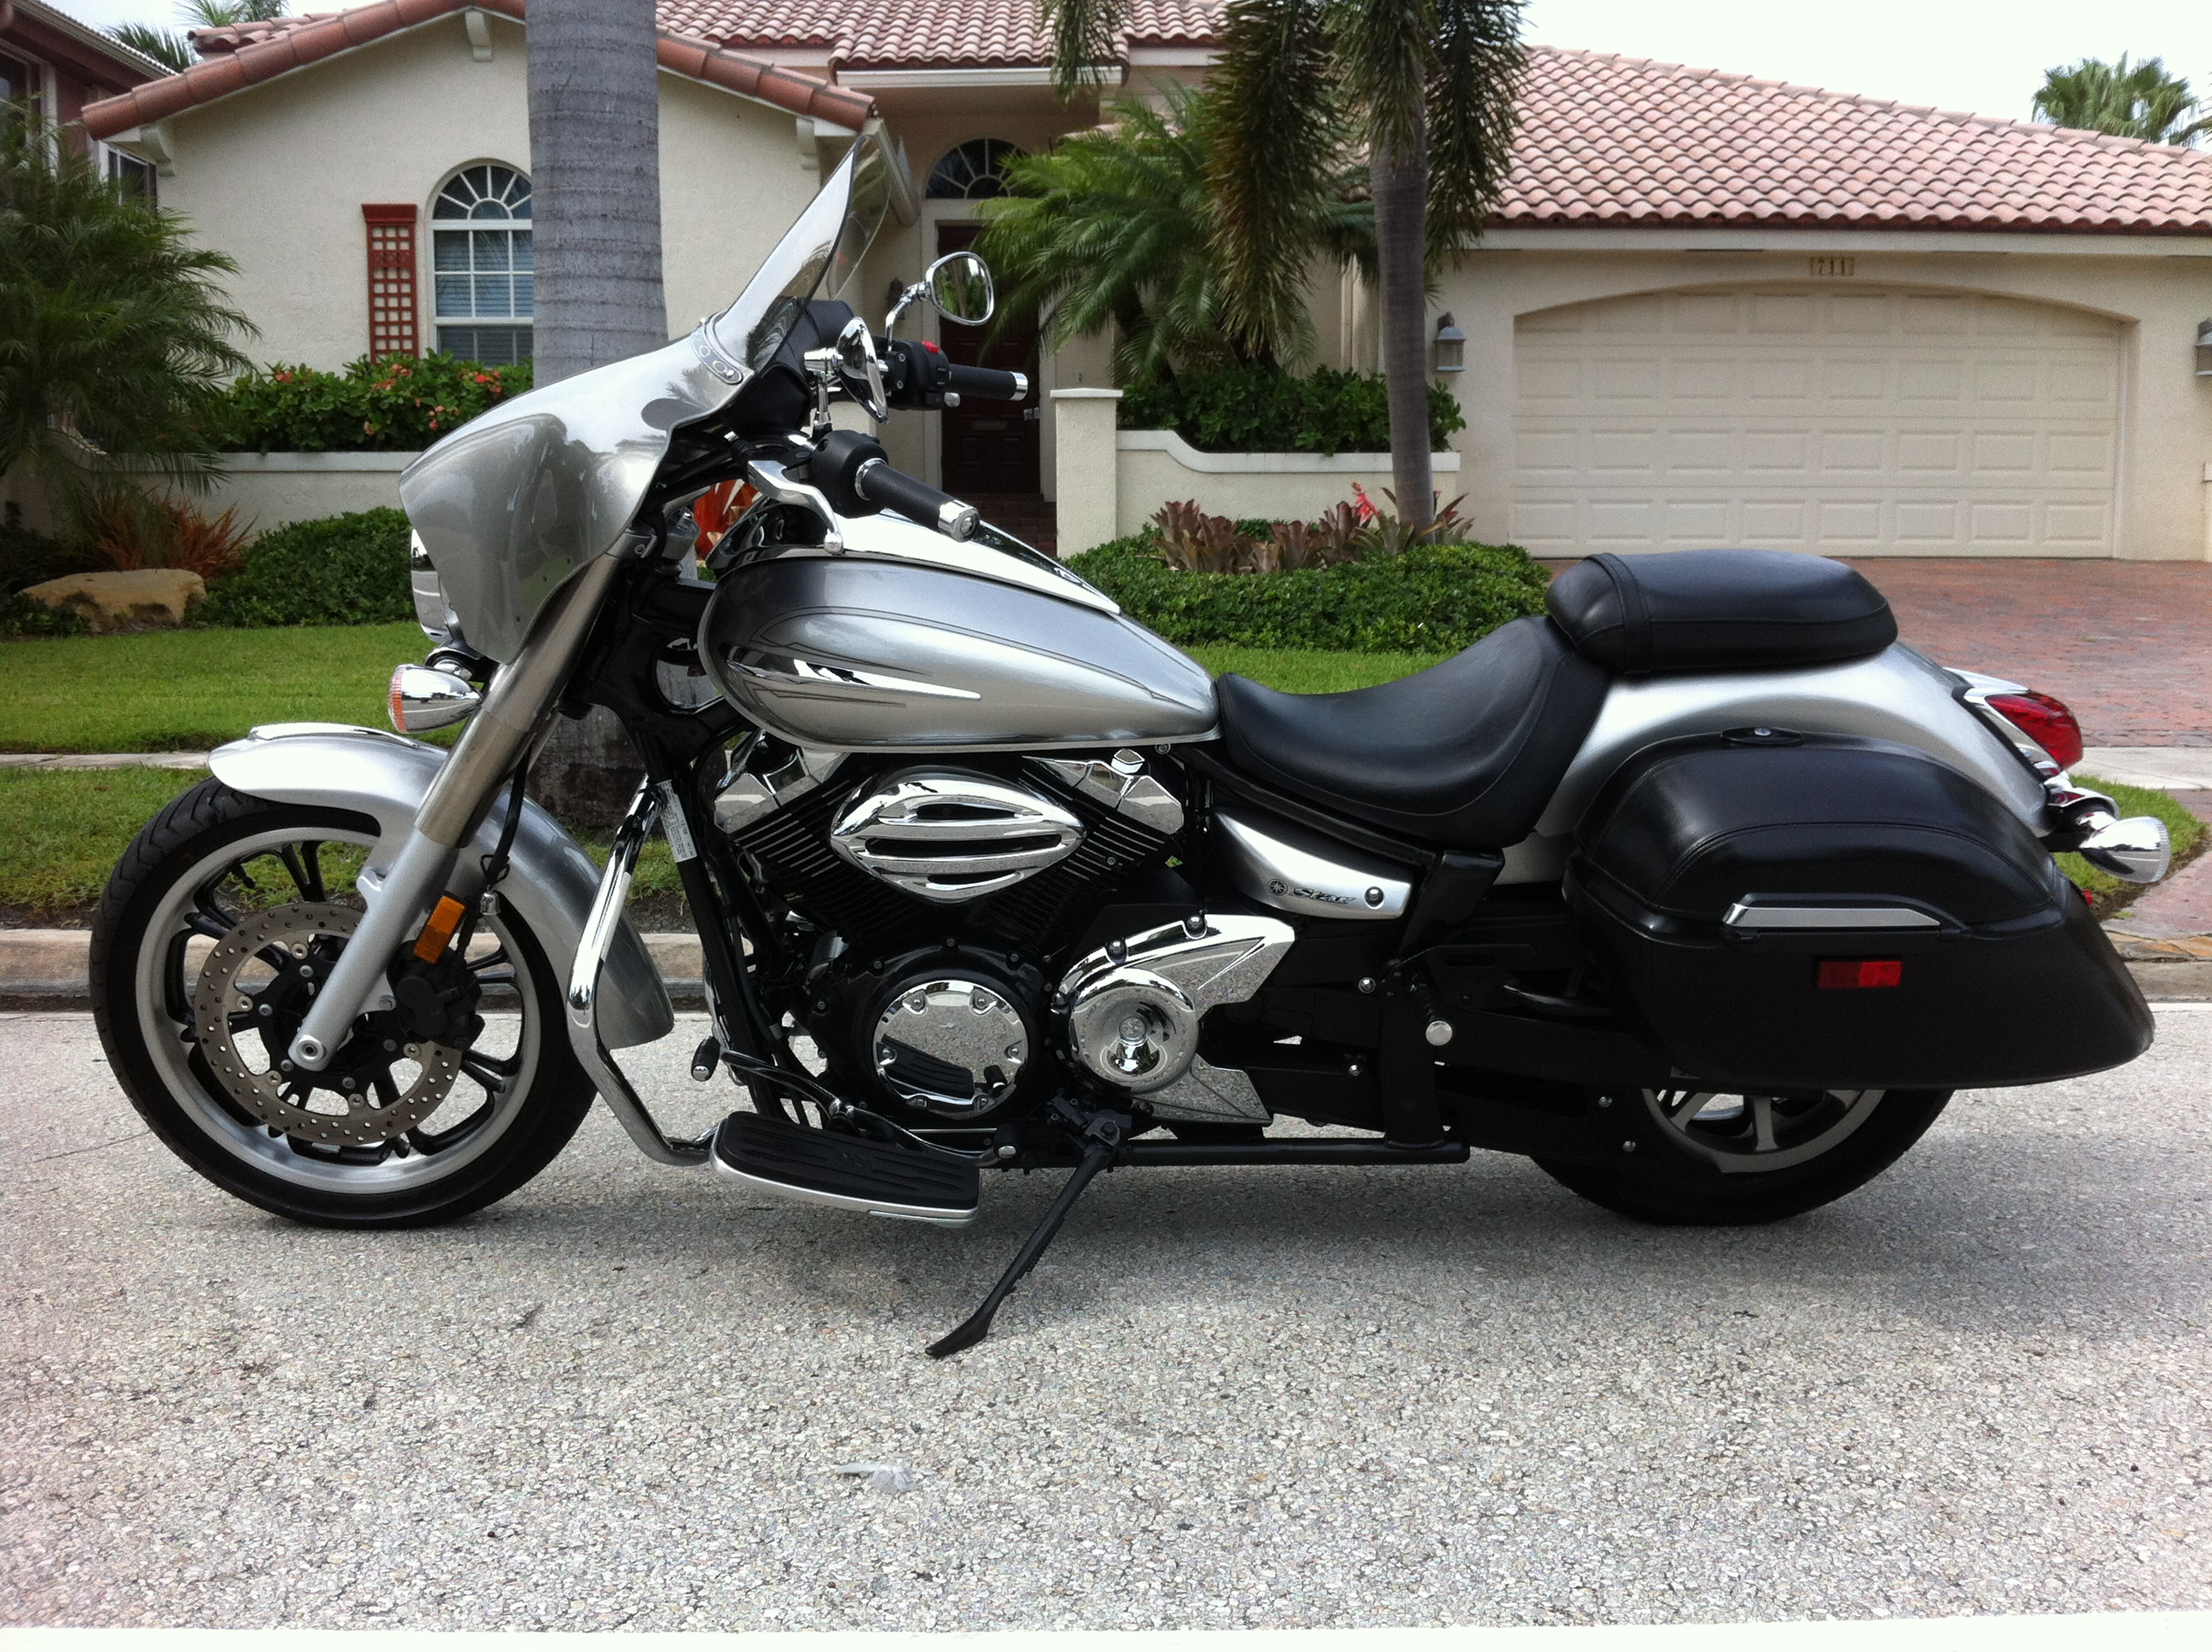 Sell Motorcycle Now We Buy Motorcycles In Florida